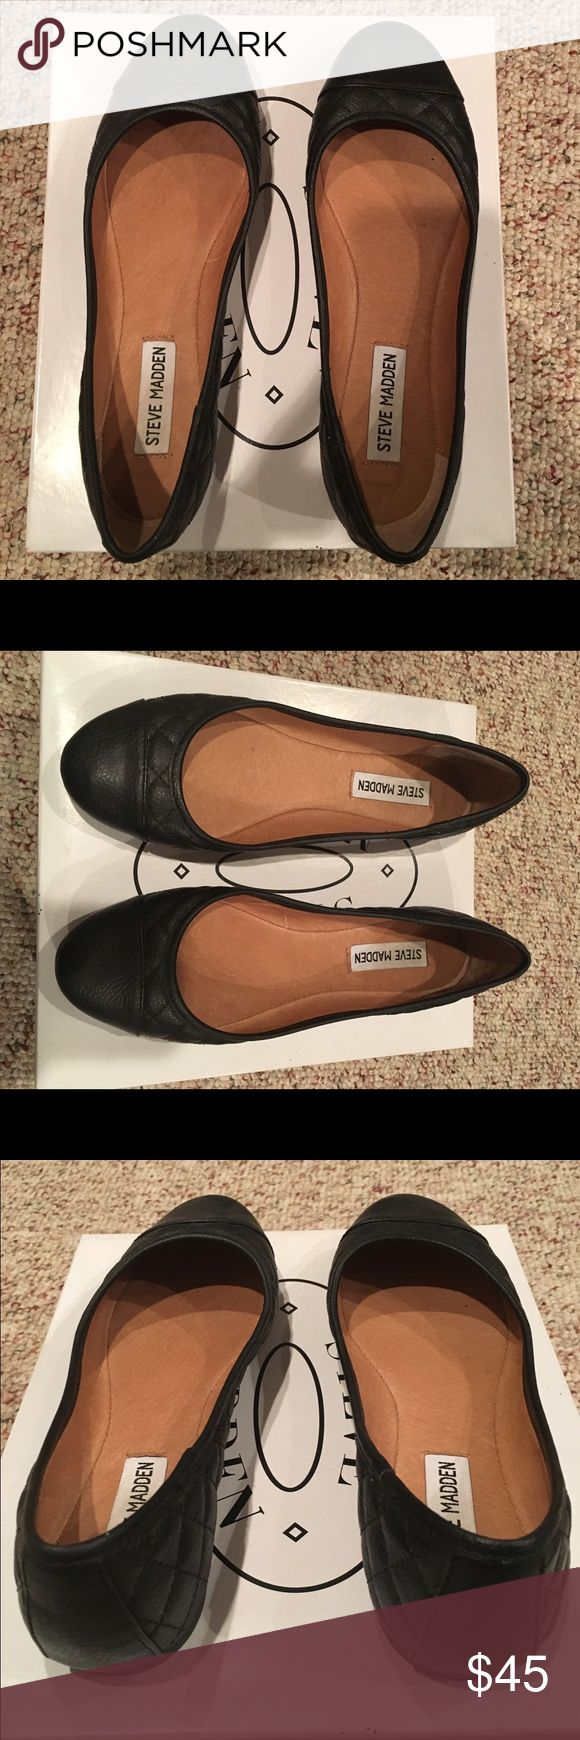 STEVE MADDEN Flats Steve Madden Flats ▪️ Black leather ▪️ Quilted Texture ▪️ Camel Interior ▪️Never worn ▪️ Size 7 ▪️ Fit true to size ▪️ Make me an offer! Steve Madden Shoes Flats & Loafers